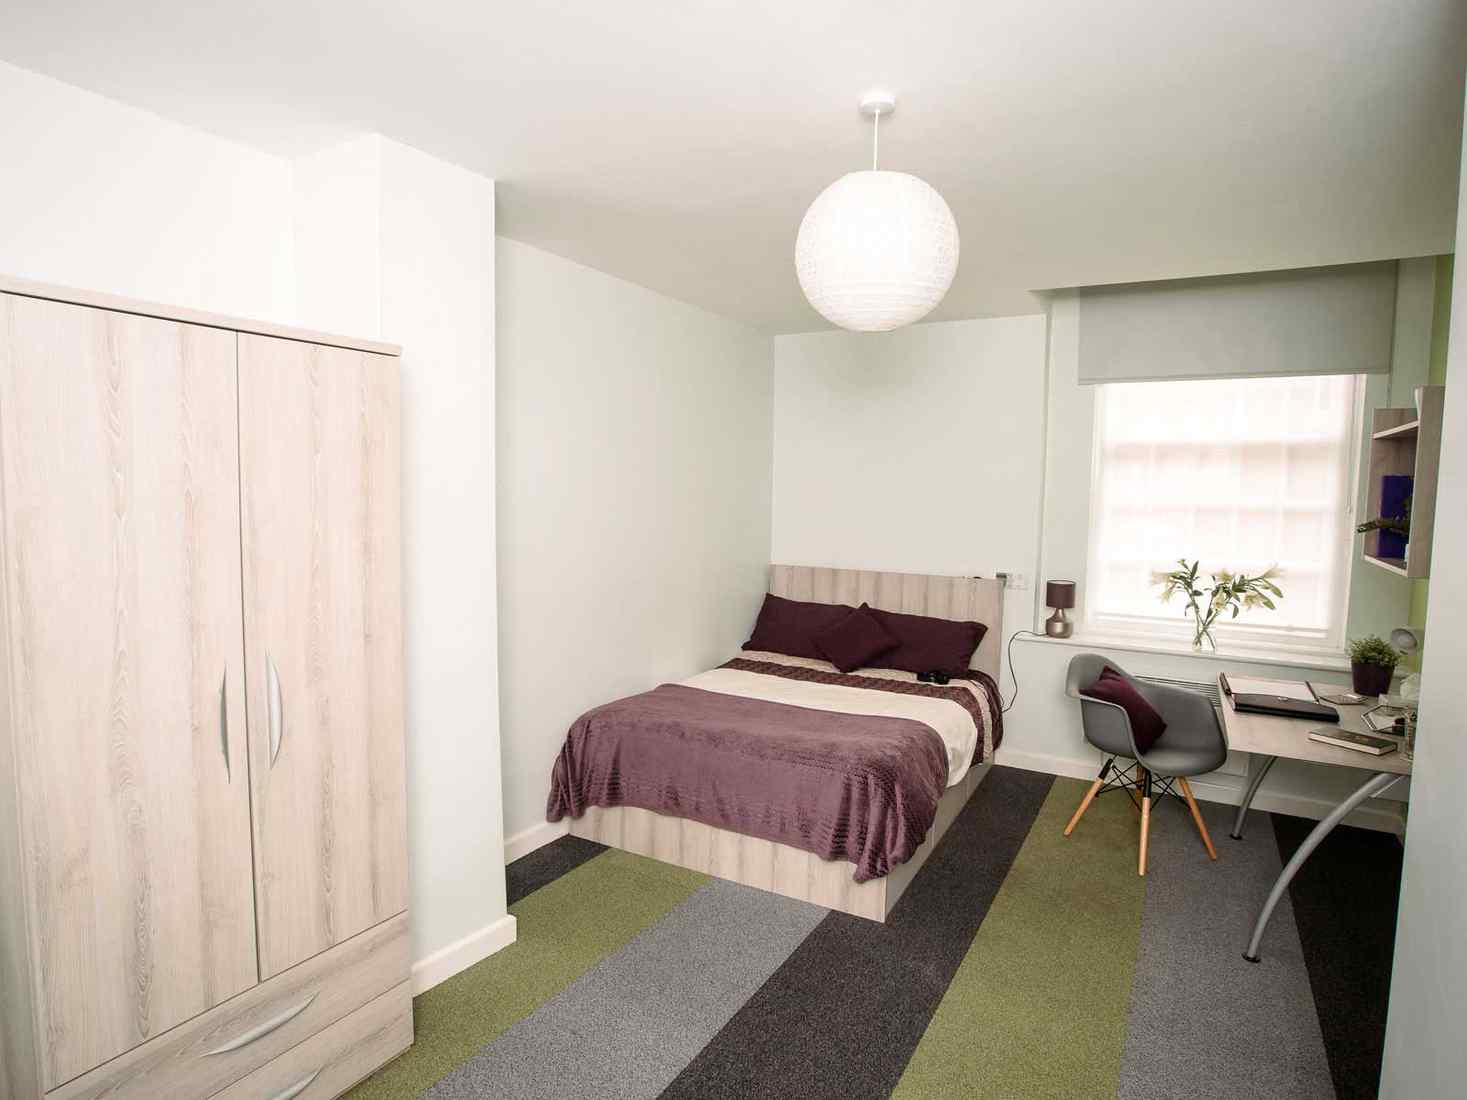 Student room with double bed, wardrobe and desk